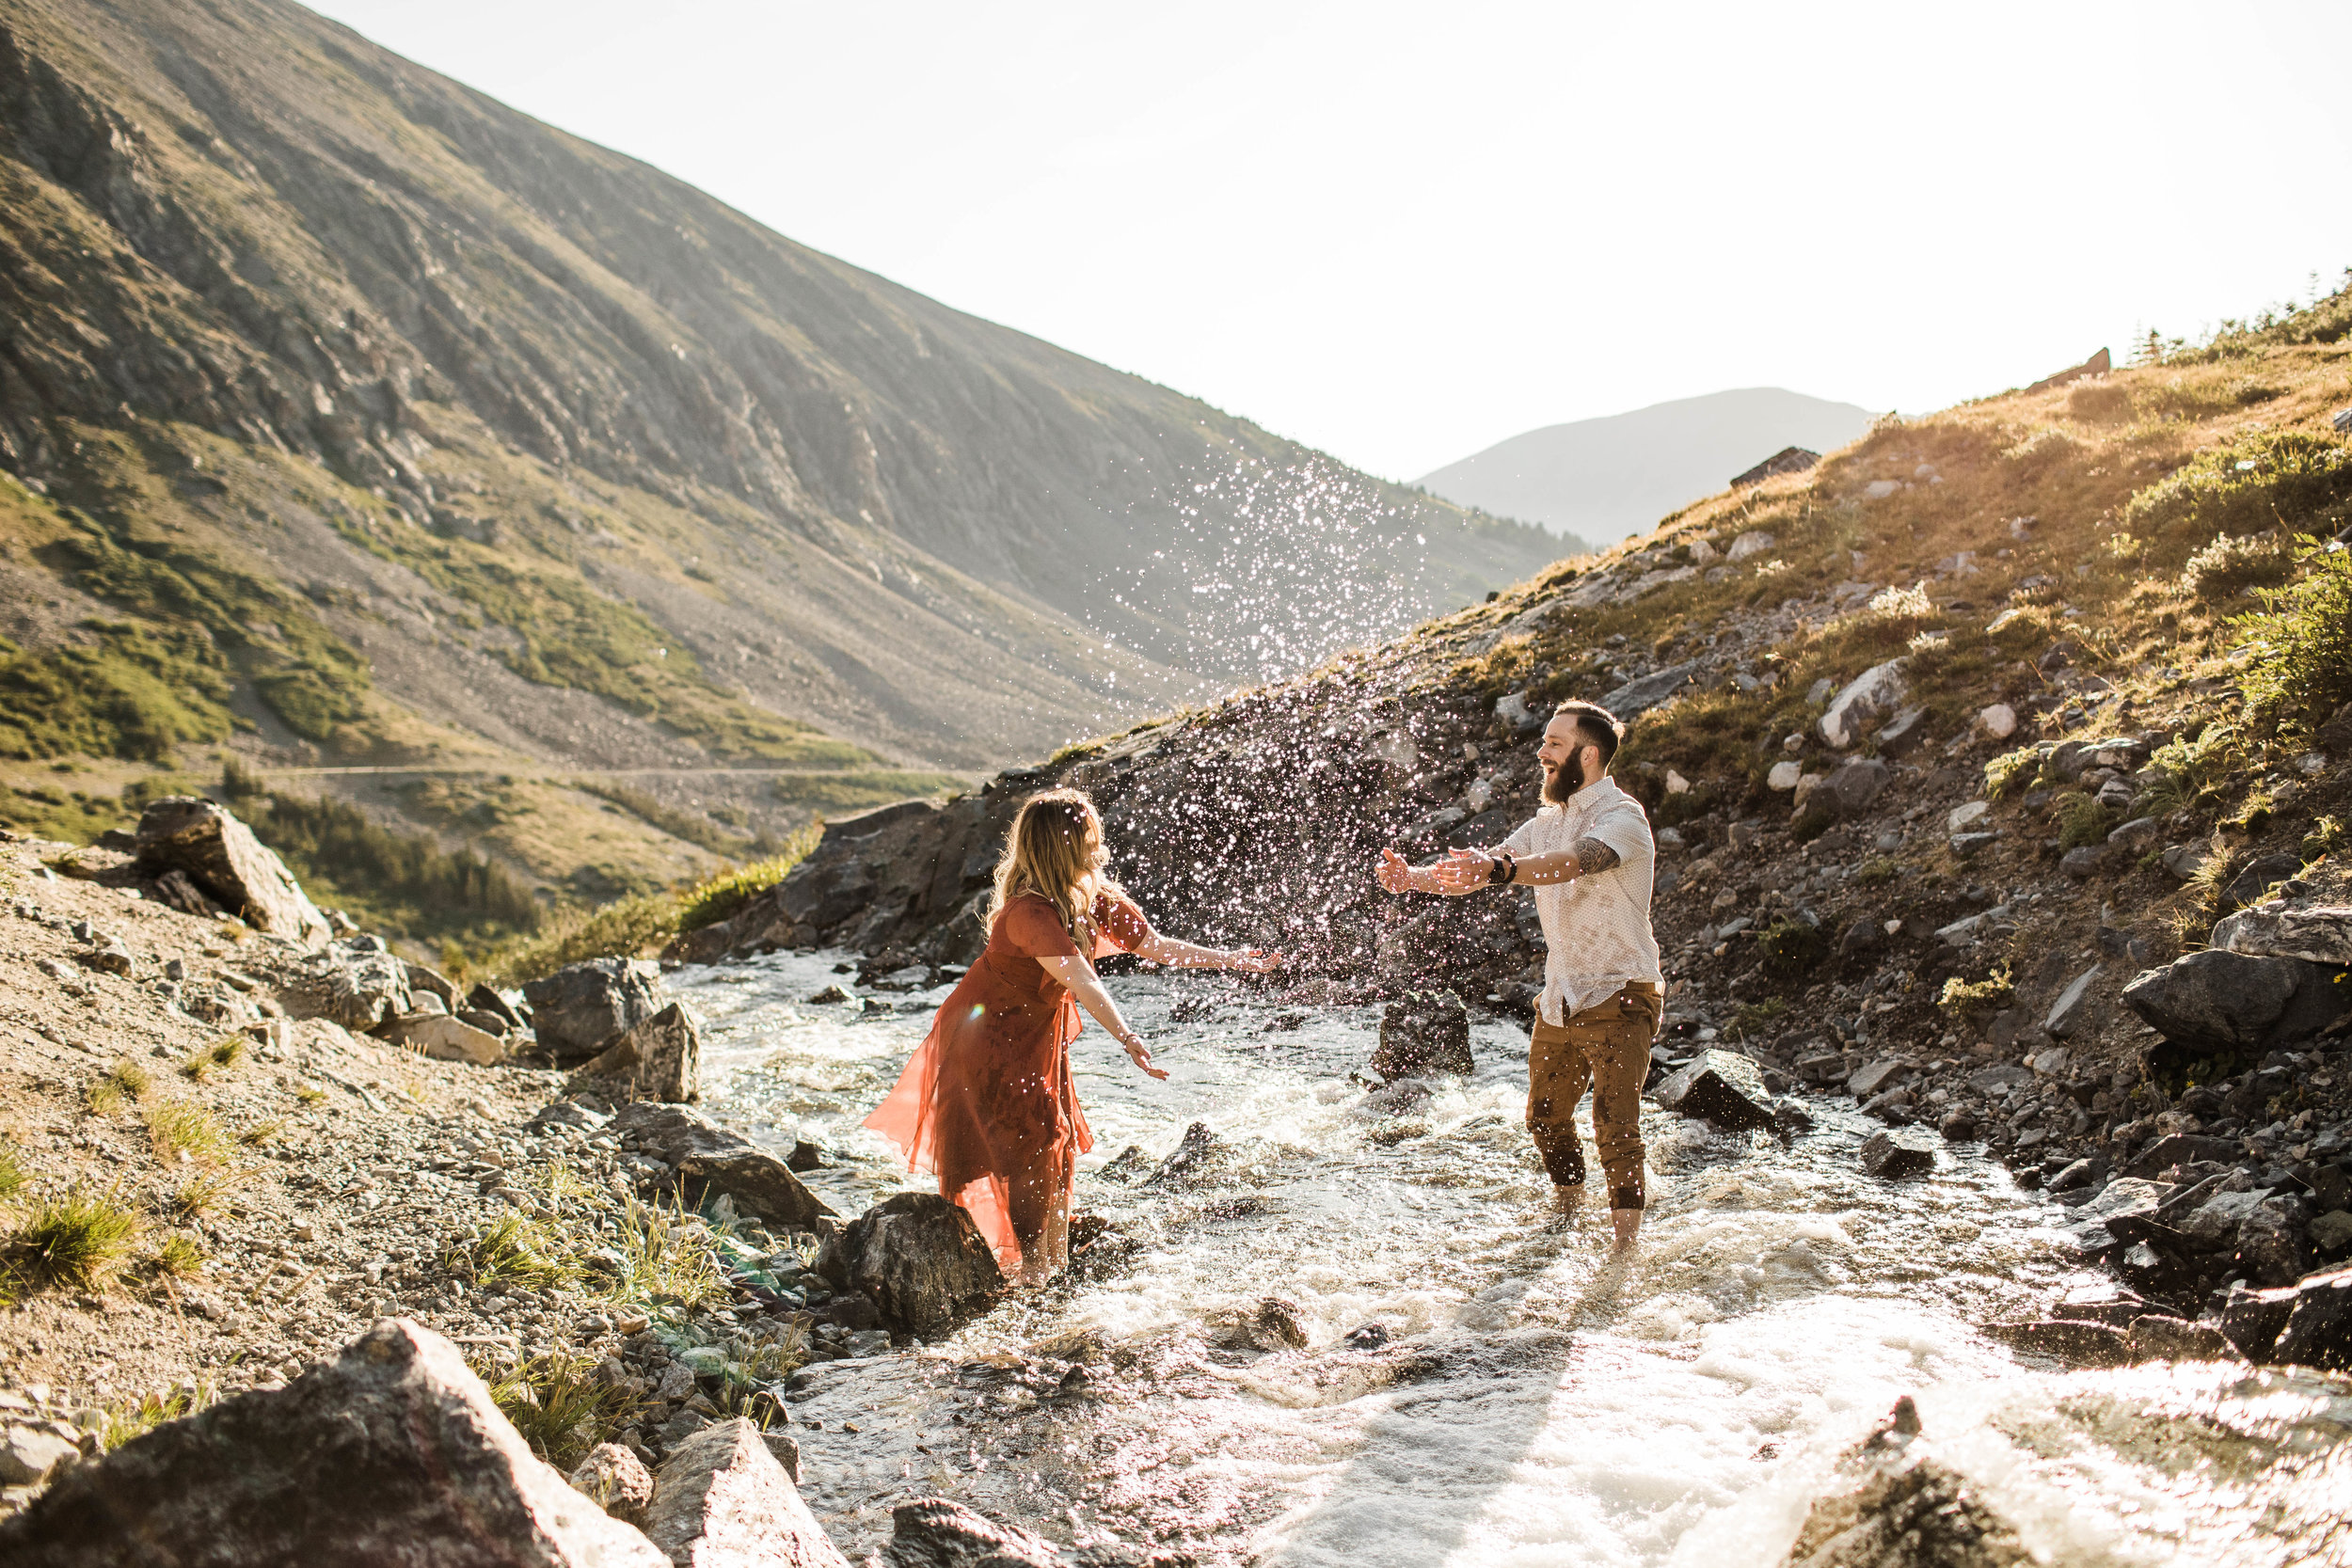 eloping couple splashing around in a creek during their adventurous engagement photos in the mountains of Colorado | Breckenridge small adventure wedding photographers